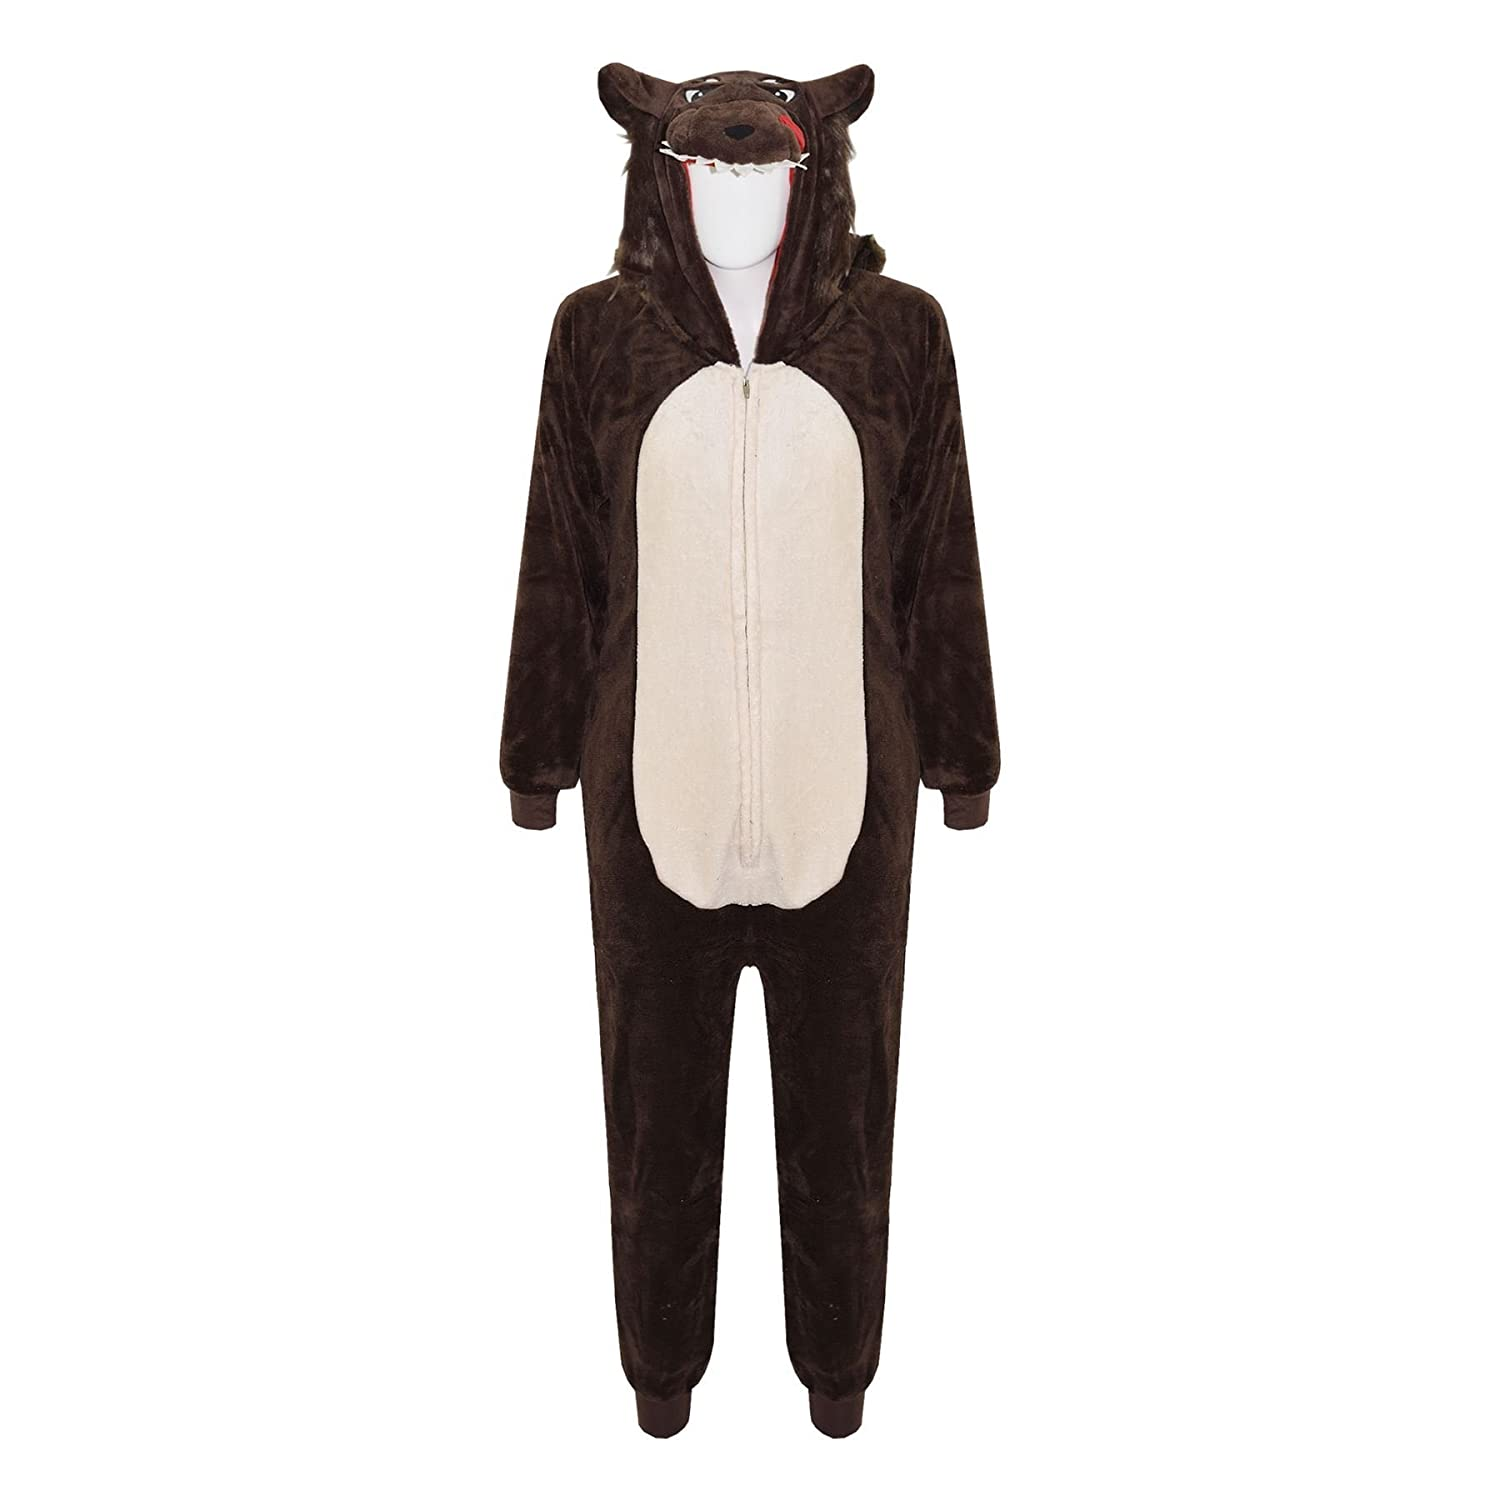 amazoncom kids girls boys onesie soft fluffy wolf all in one halloween costume 714 years clothing